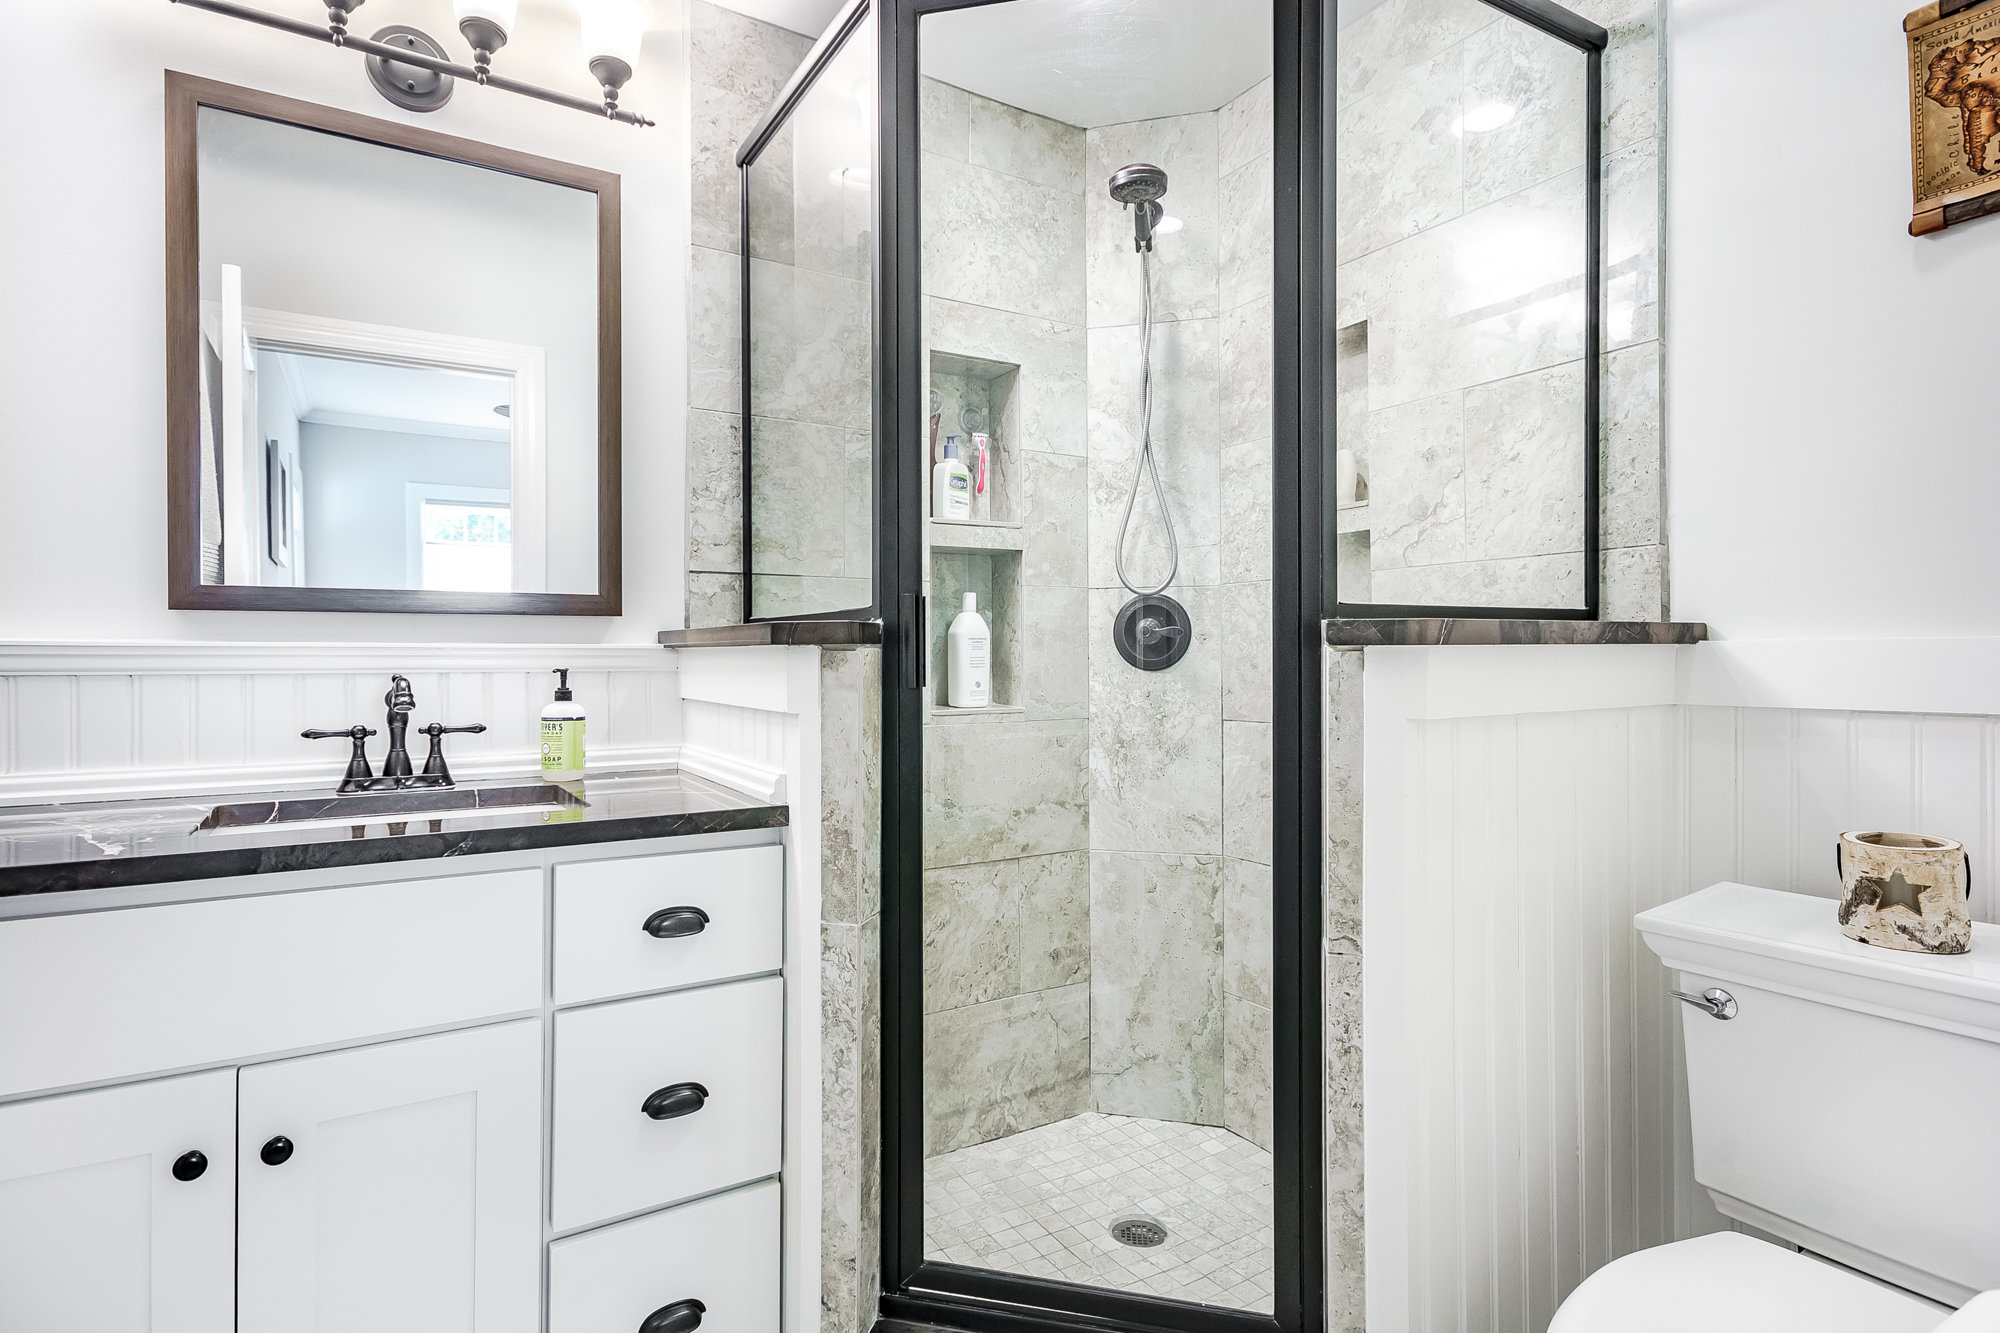 Master bathroom with stand-up shower